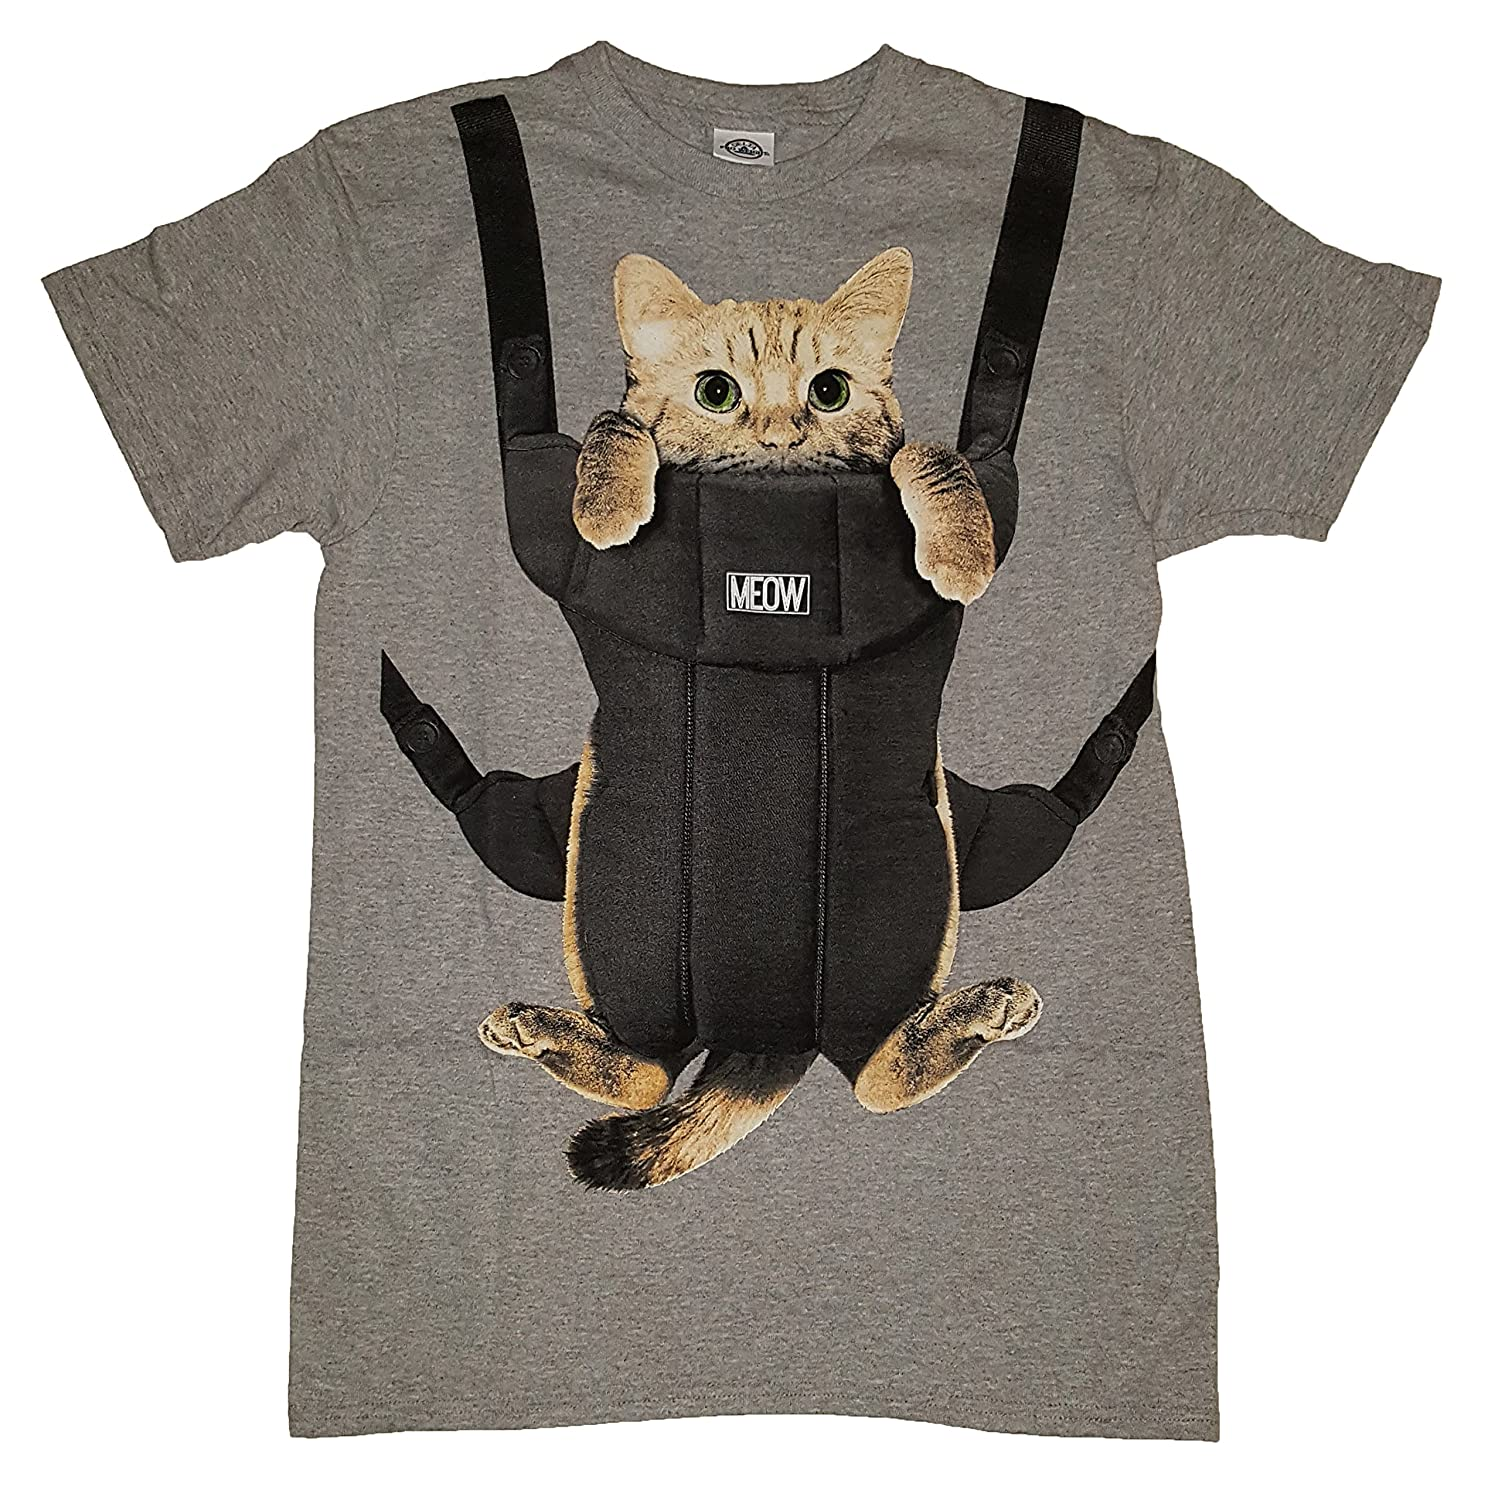 Amazon Kitty Cat Carrier Graphic T Shirt Clothing